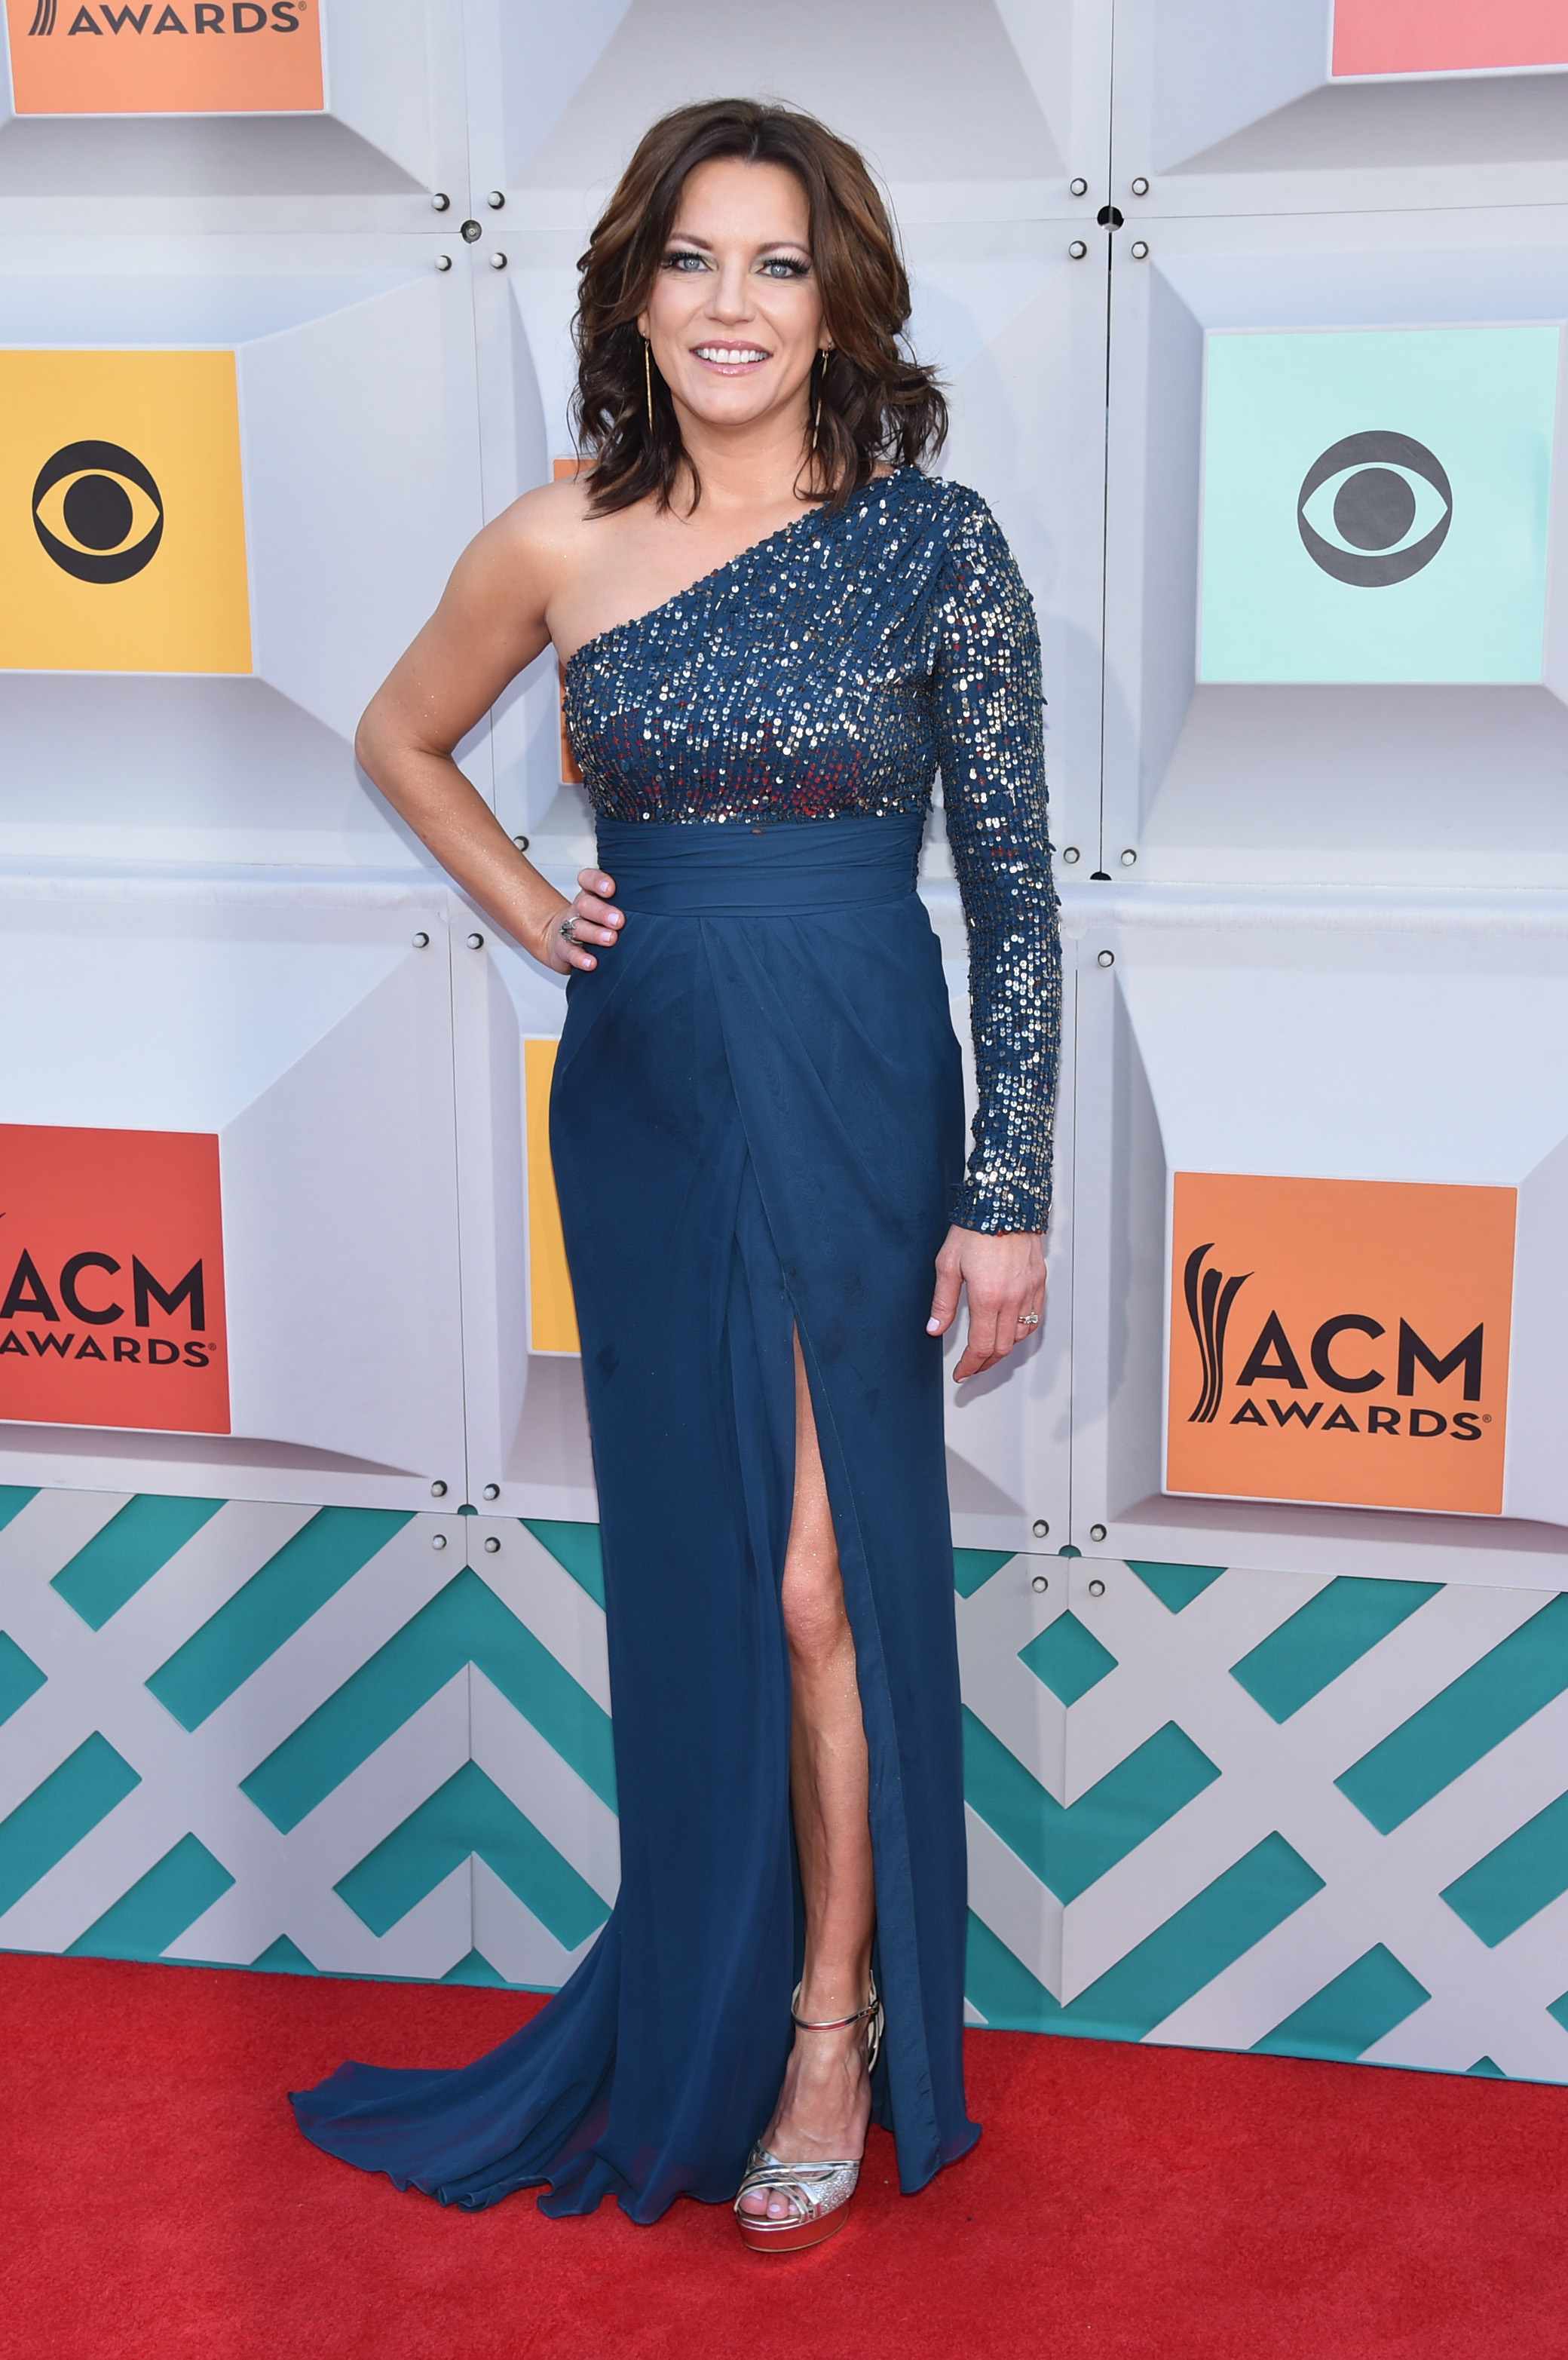 Country Bathroom Decorating Ideas All The Looks From The Academy Of Country Music Awards